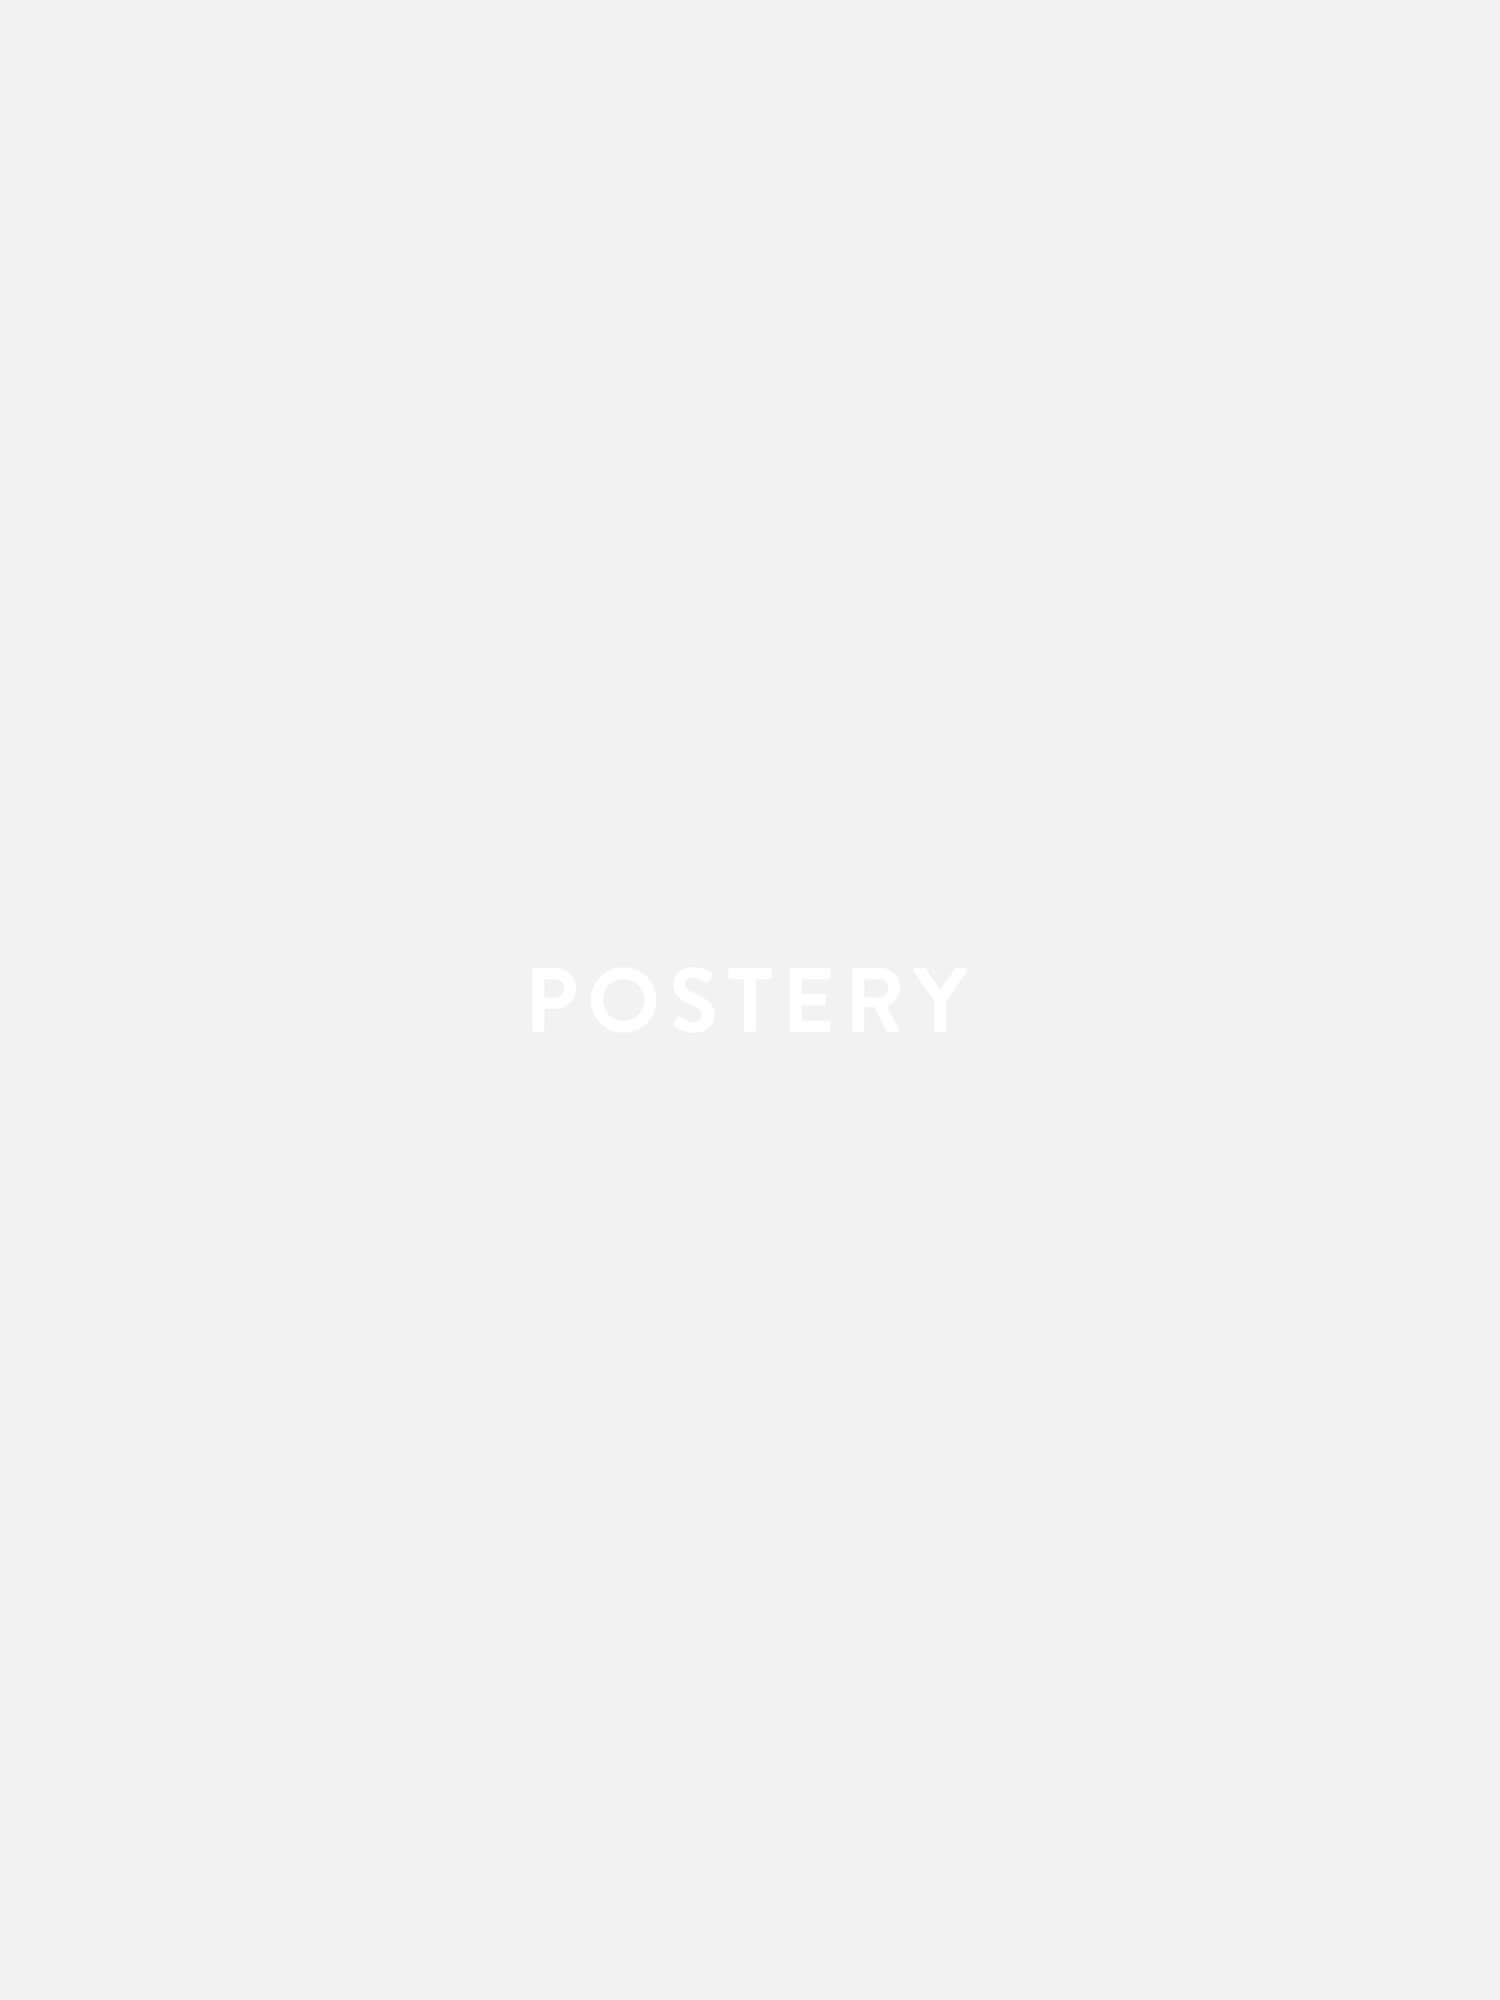 Lion Savannah Poster